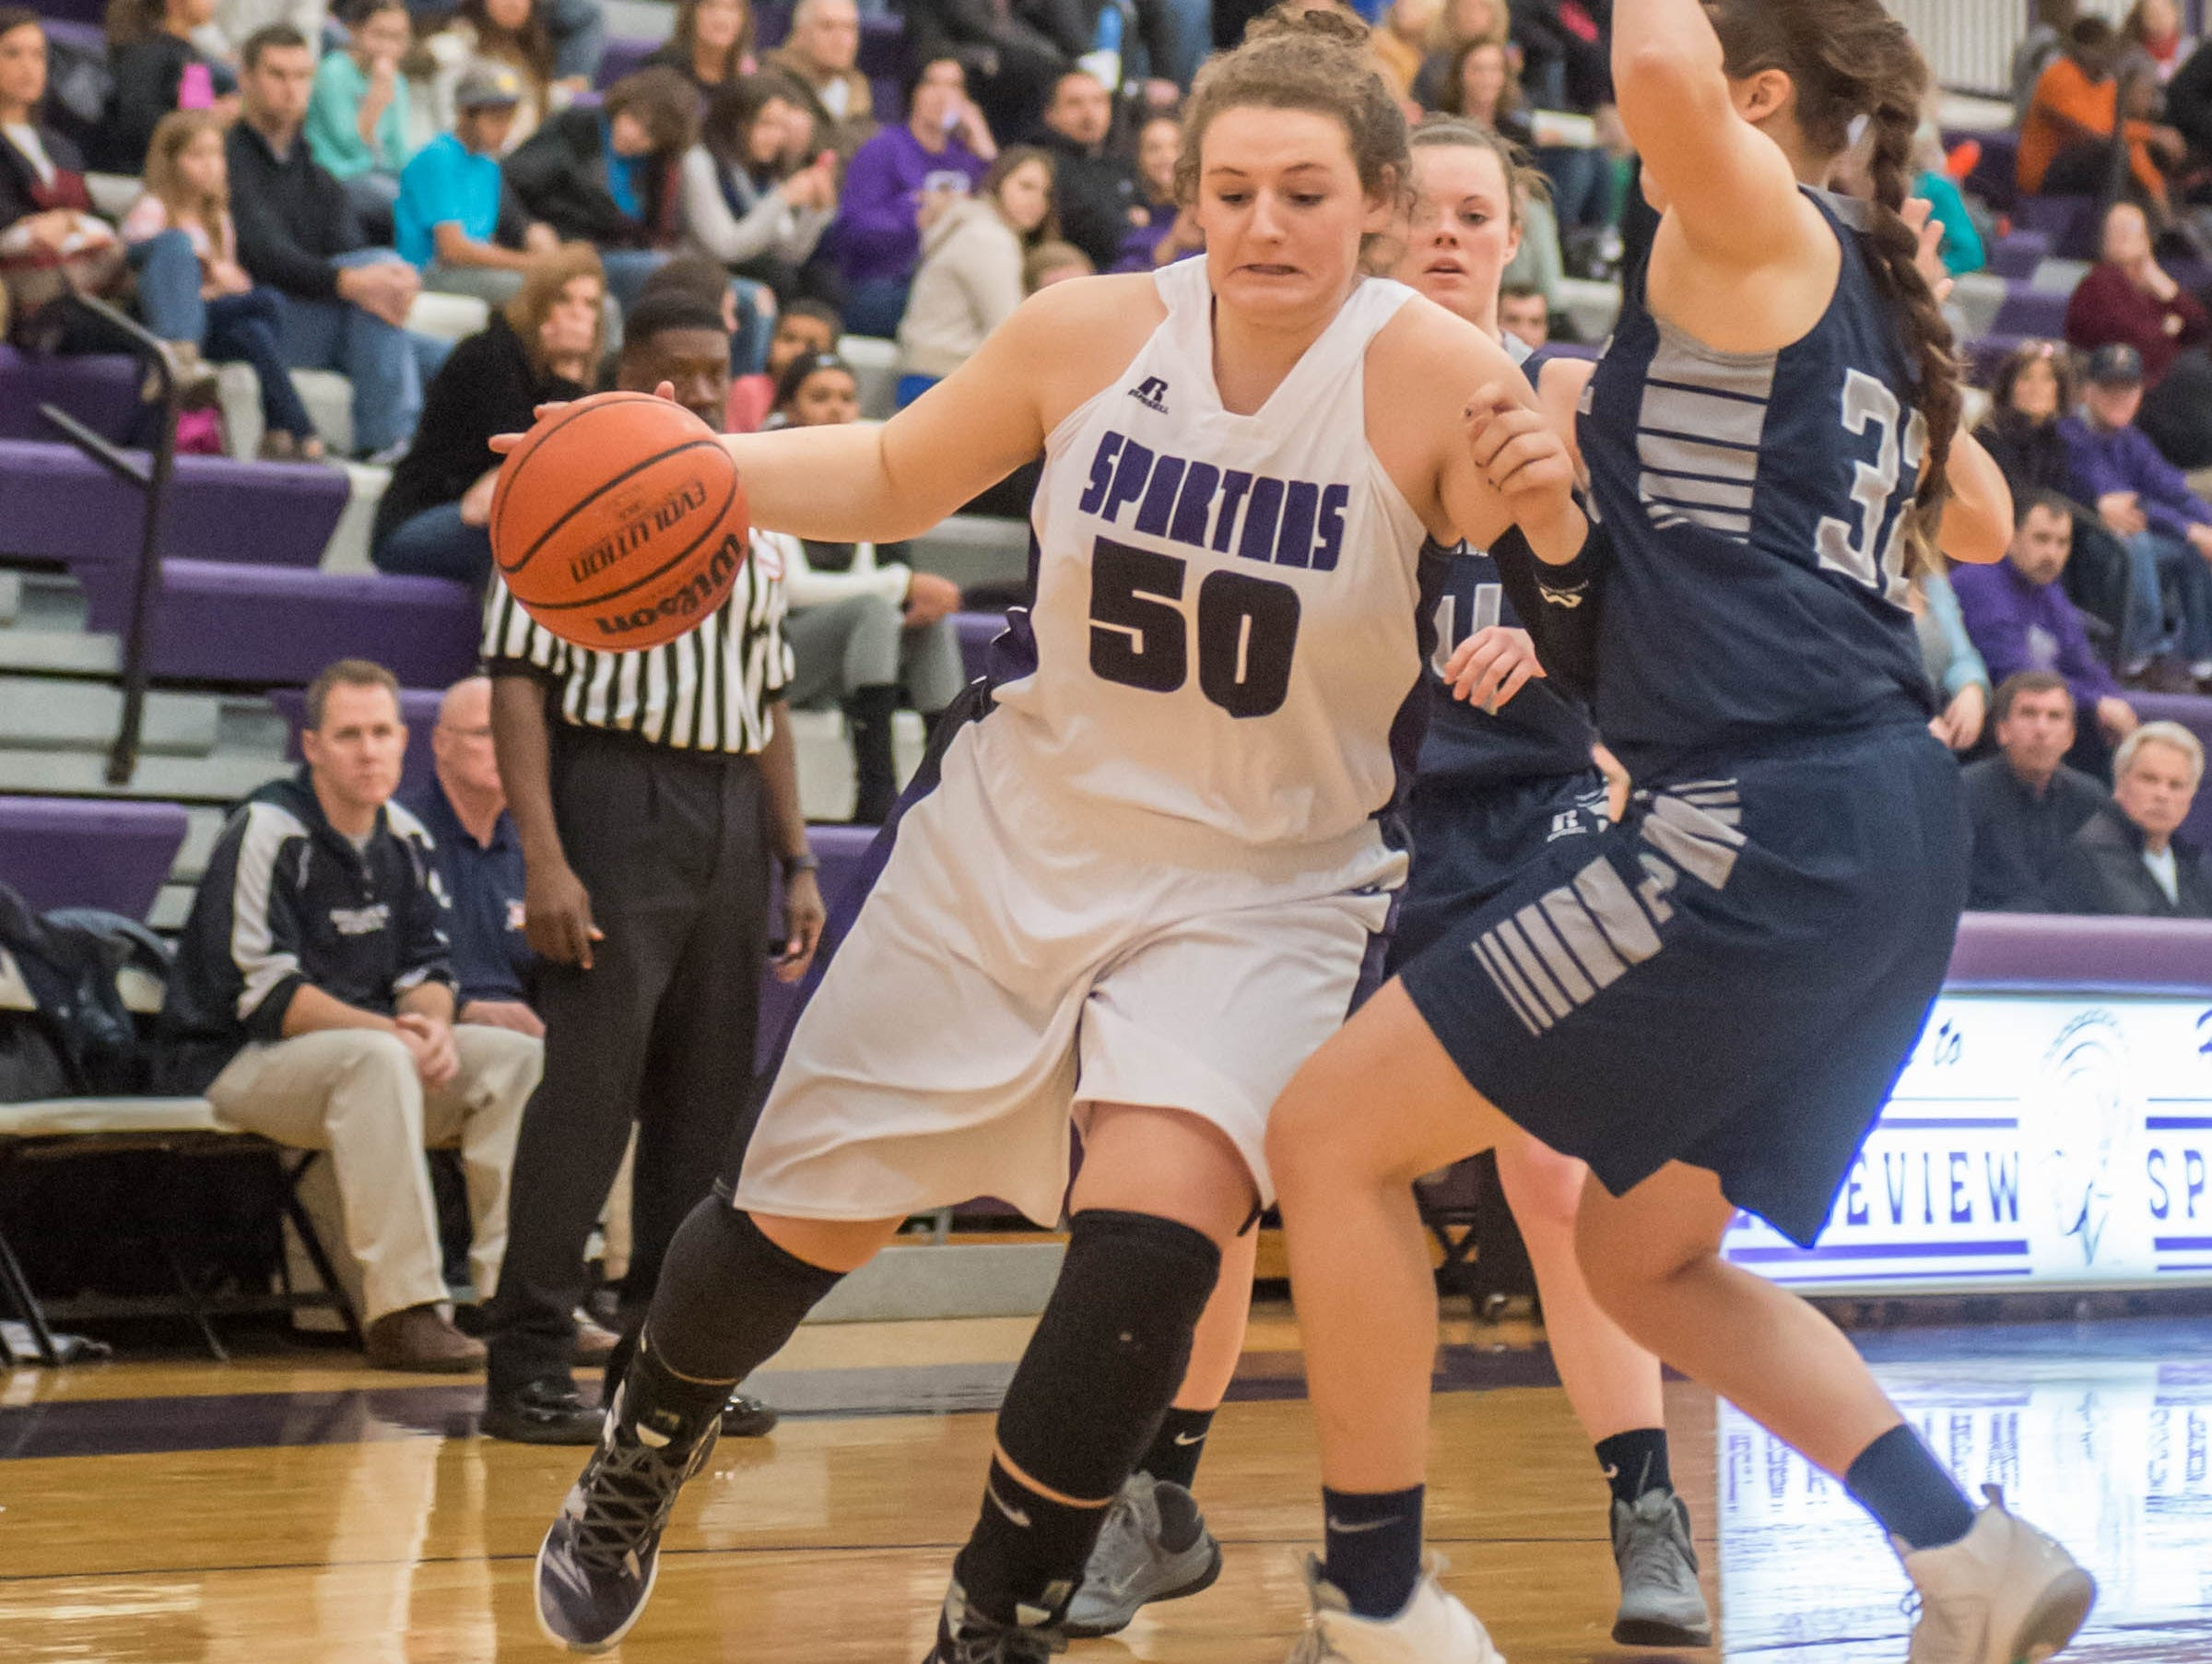 Lakeview's Sunshine Johnson drives to the hoop against Gull Lake in Friday evening's game.